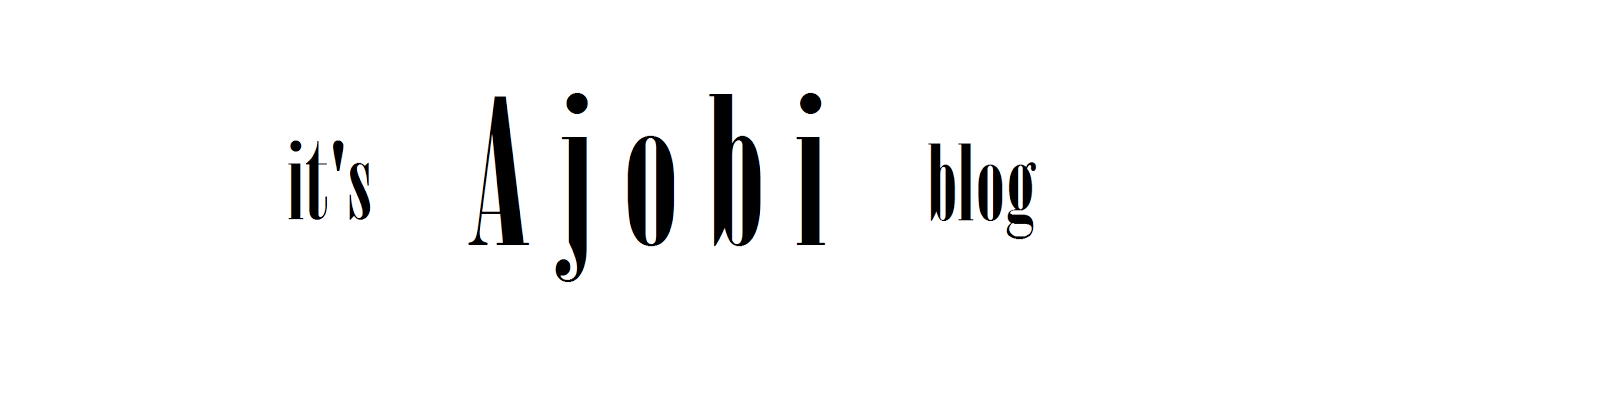 it's Ajobi blog